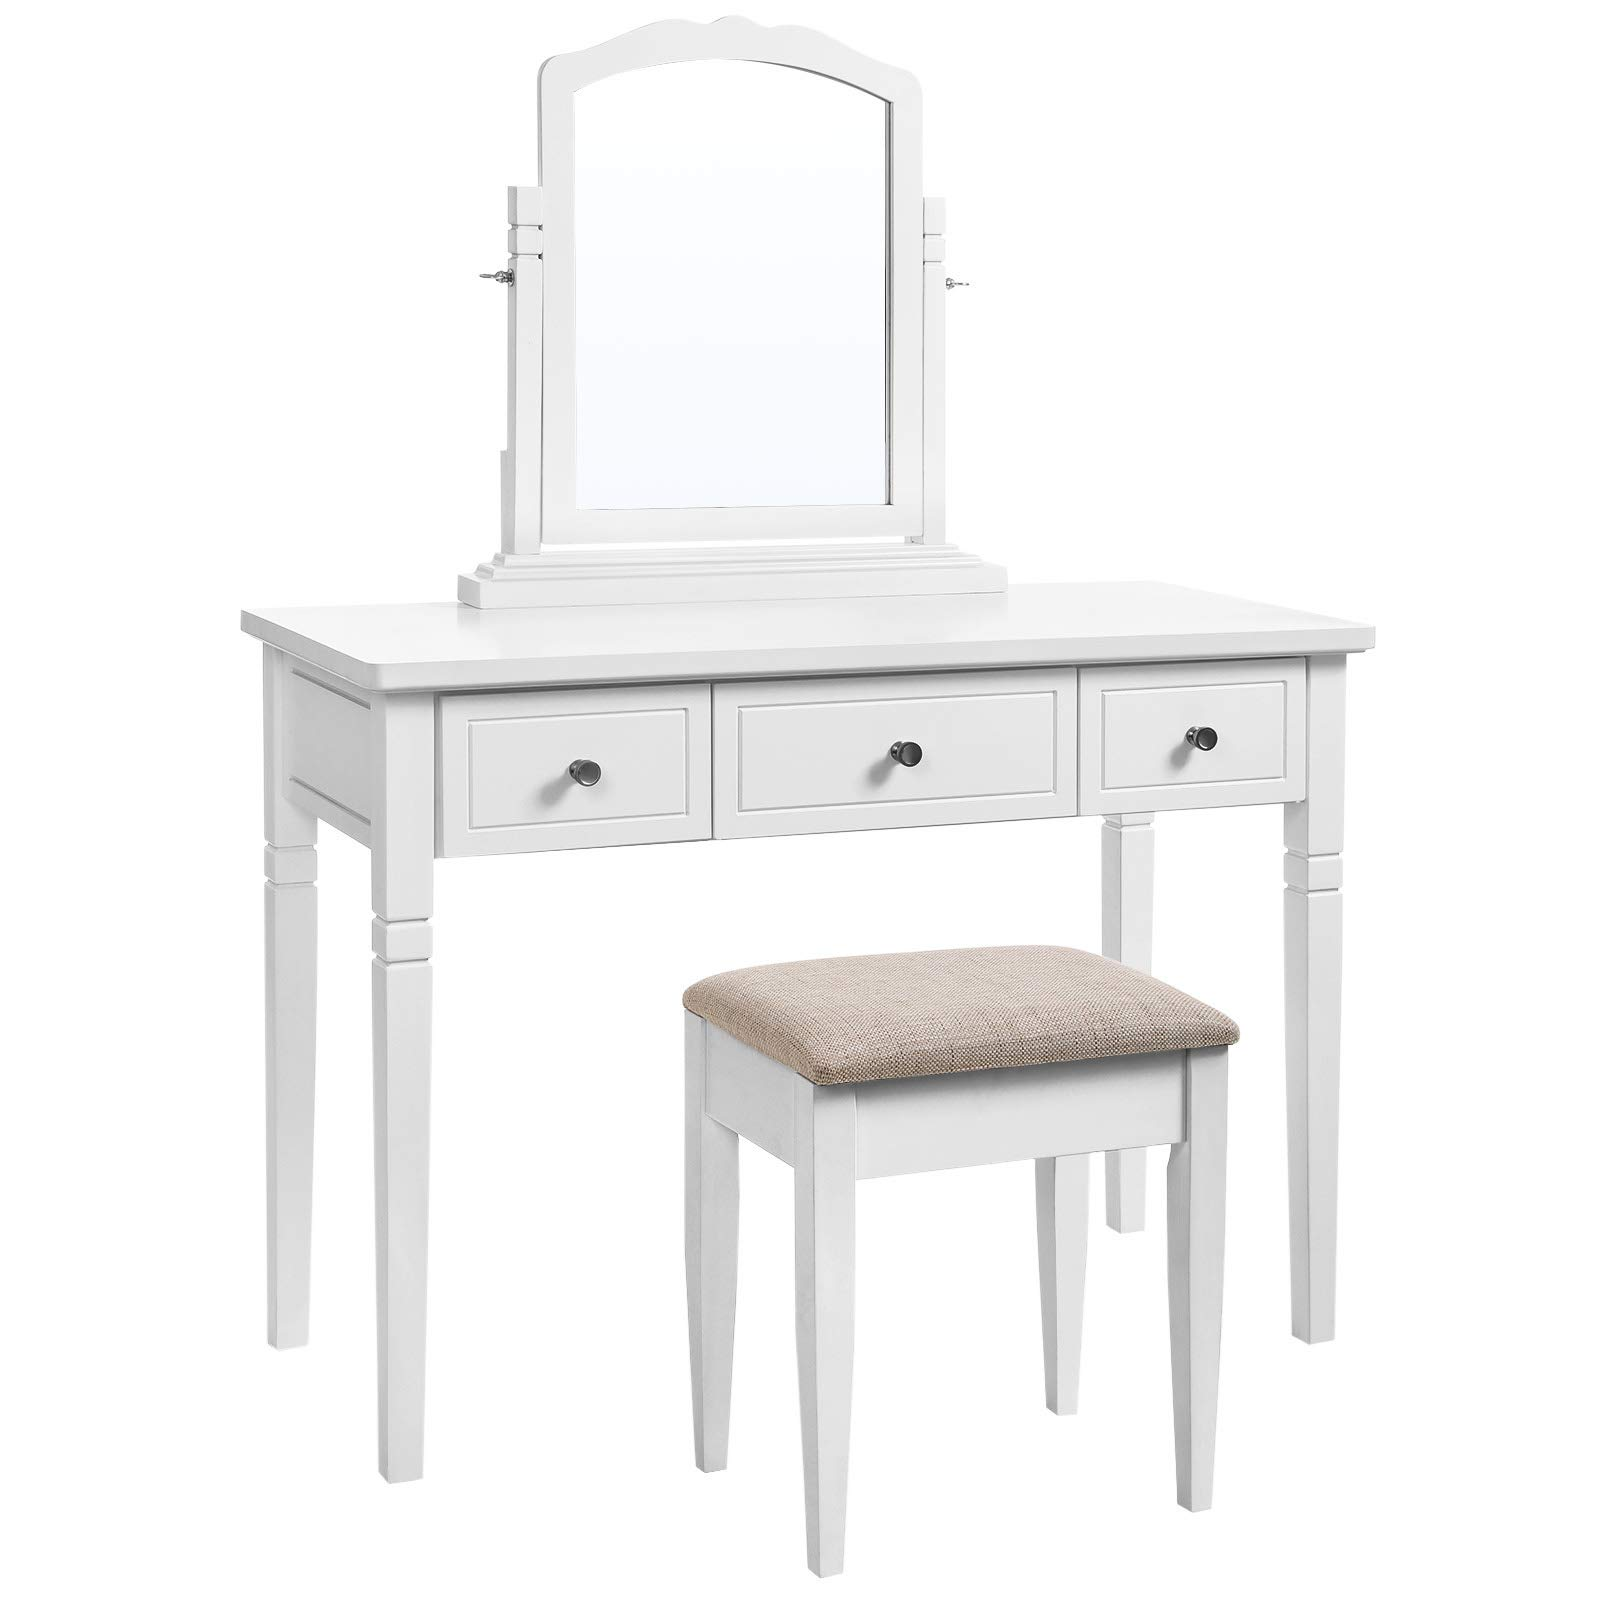 VASAGLE Vanity Set with 3 Big Drawers, Dressing Table with 1 Stool, Makeup Desk with Large Rotating Mirror, Makeup and Cosmetic Storage, Multifunctional, Easy to Assemble, White URDT106WT by VASAGLE